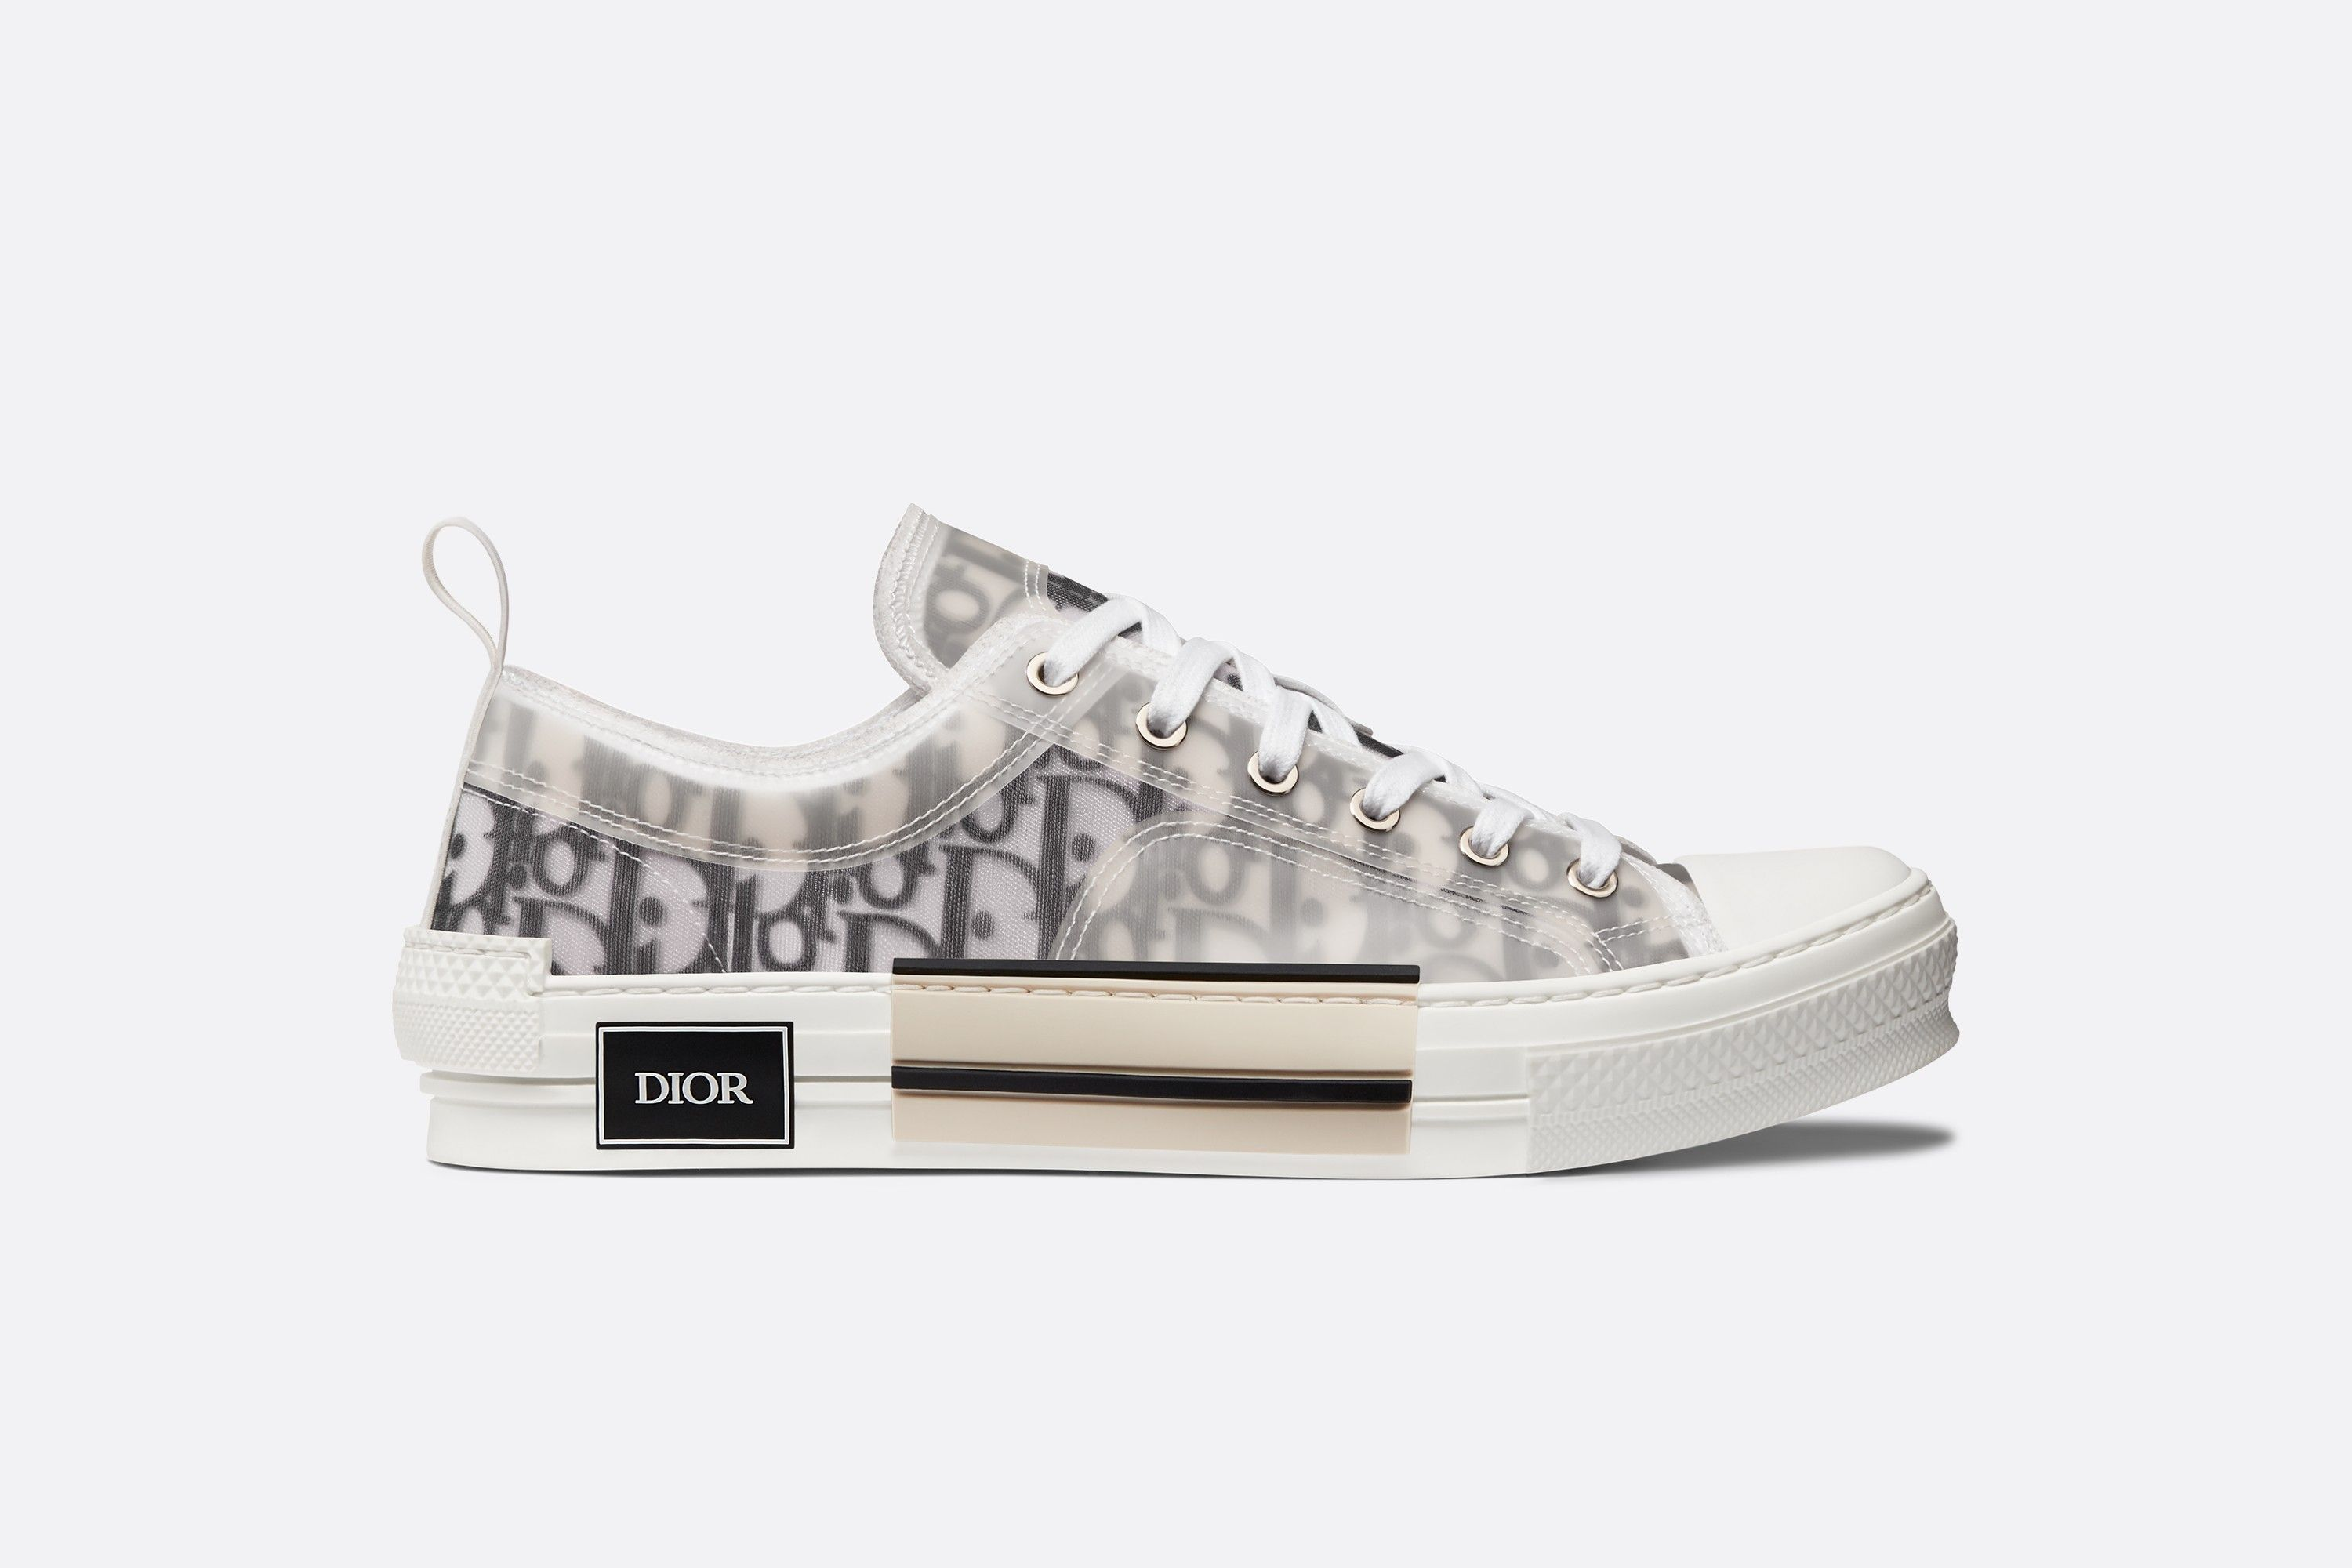 47204d7bbec B23 High-Top Sneakers in Dior Oblique - Dior | shoe closet in 2019 | Mens  designer shoes, Sneakers, Shoes